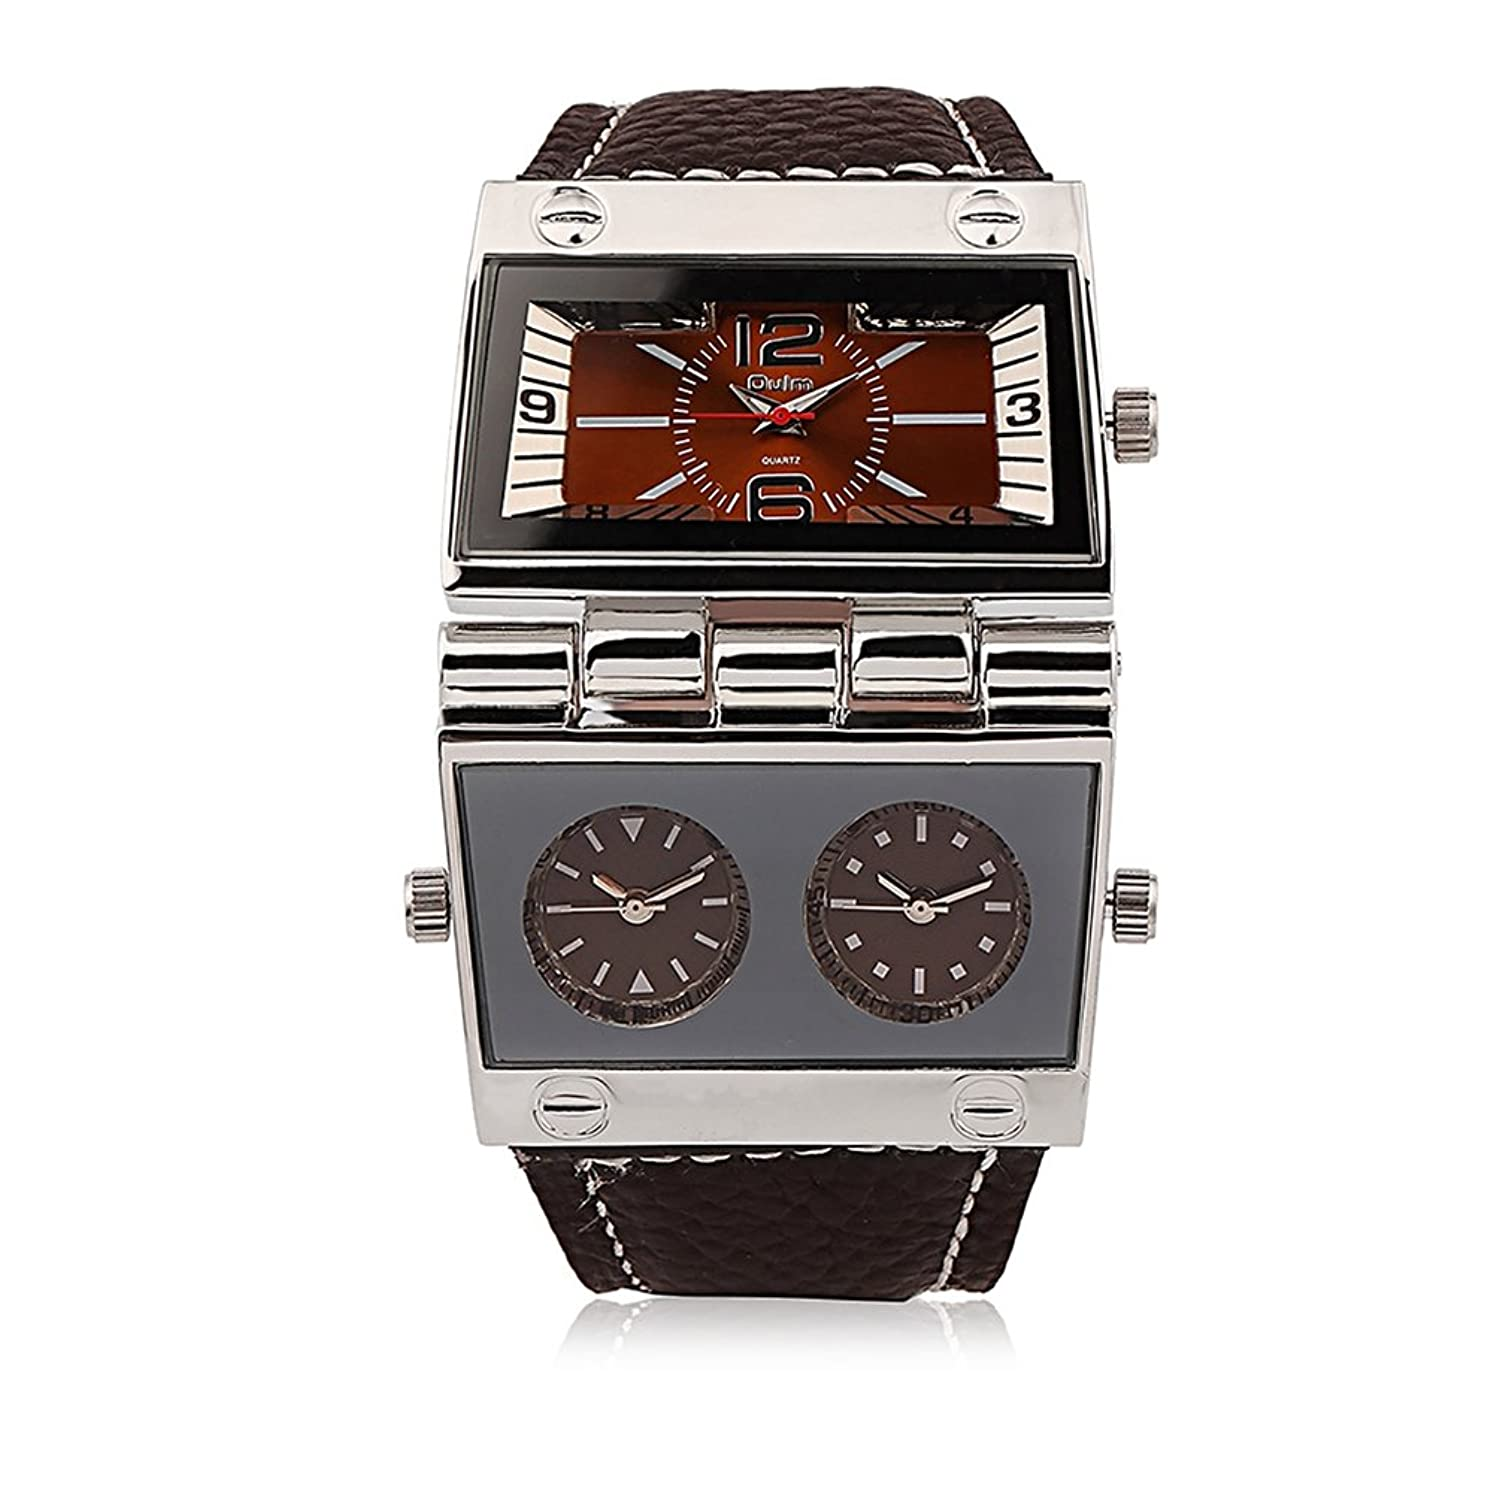 Men 's Unique Military Automatic Watchesマルチ時間ゾーンBig Face Watches with正方形ダイヤル、本革バンド Brown Dial B071ZJV8MFBrown Dial